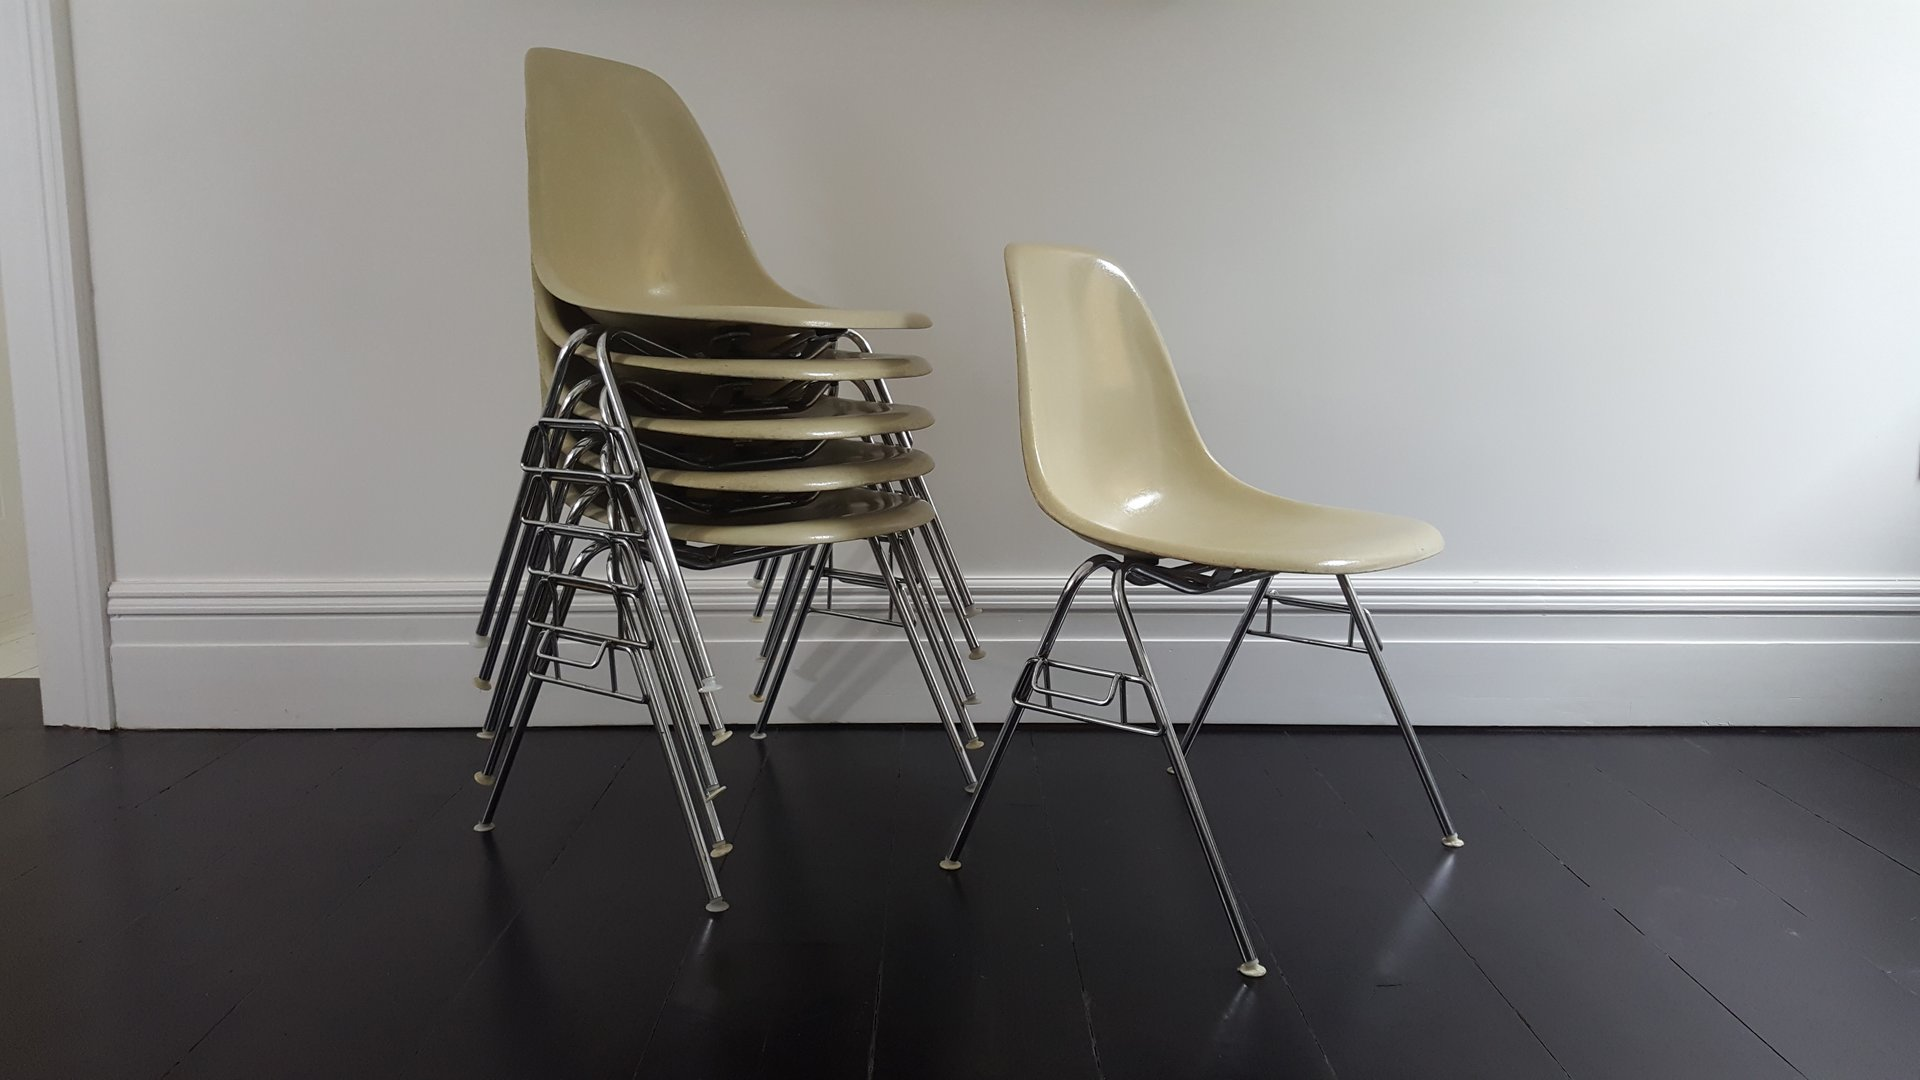 Family room herman miller eames chairs - Vintage Dss Fiberglass Shell Chair By Charles Ray Eames For Herman Miller